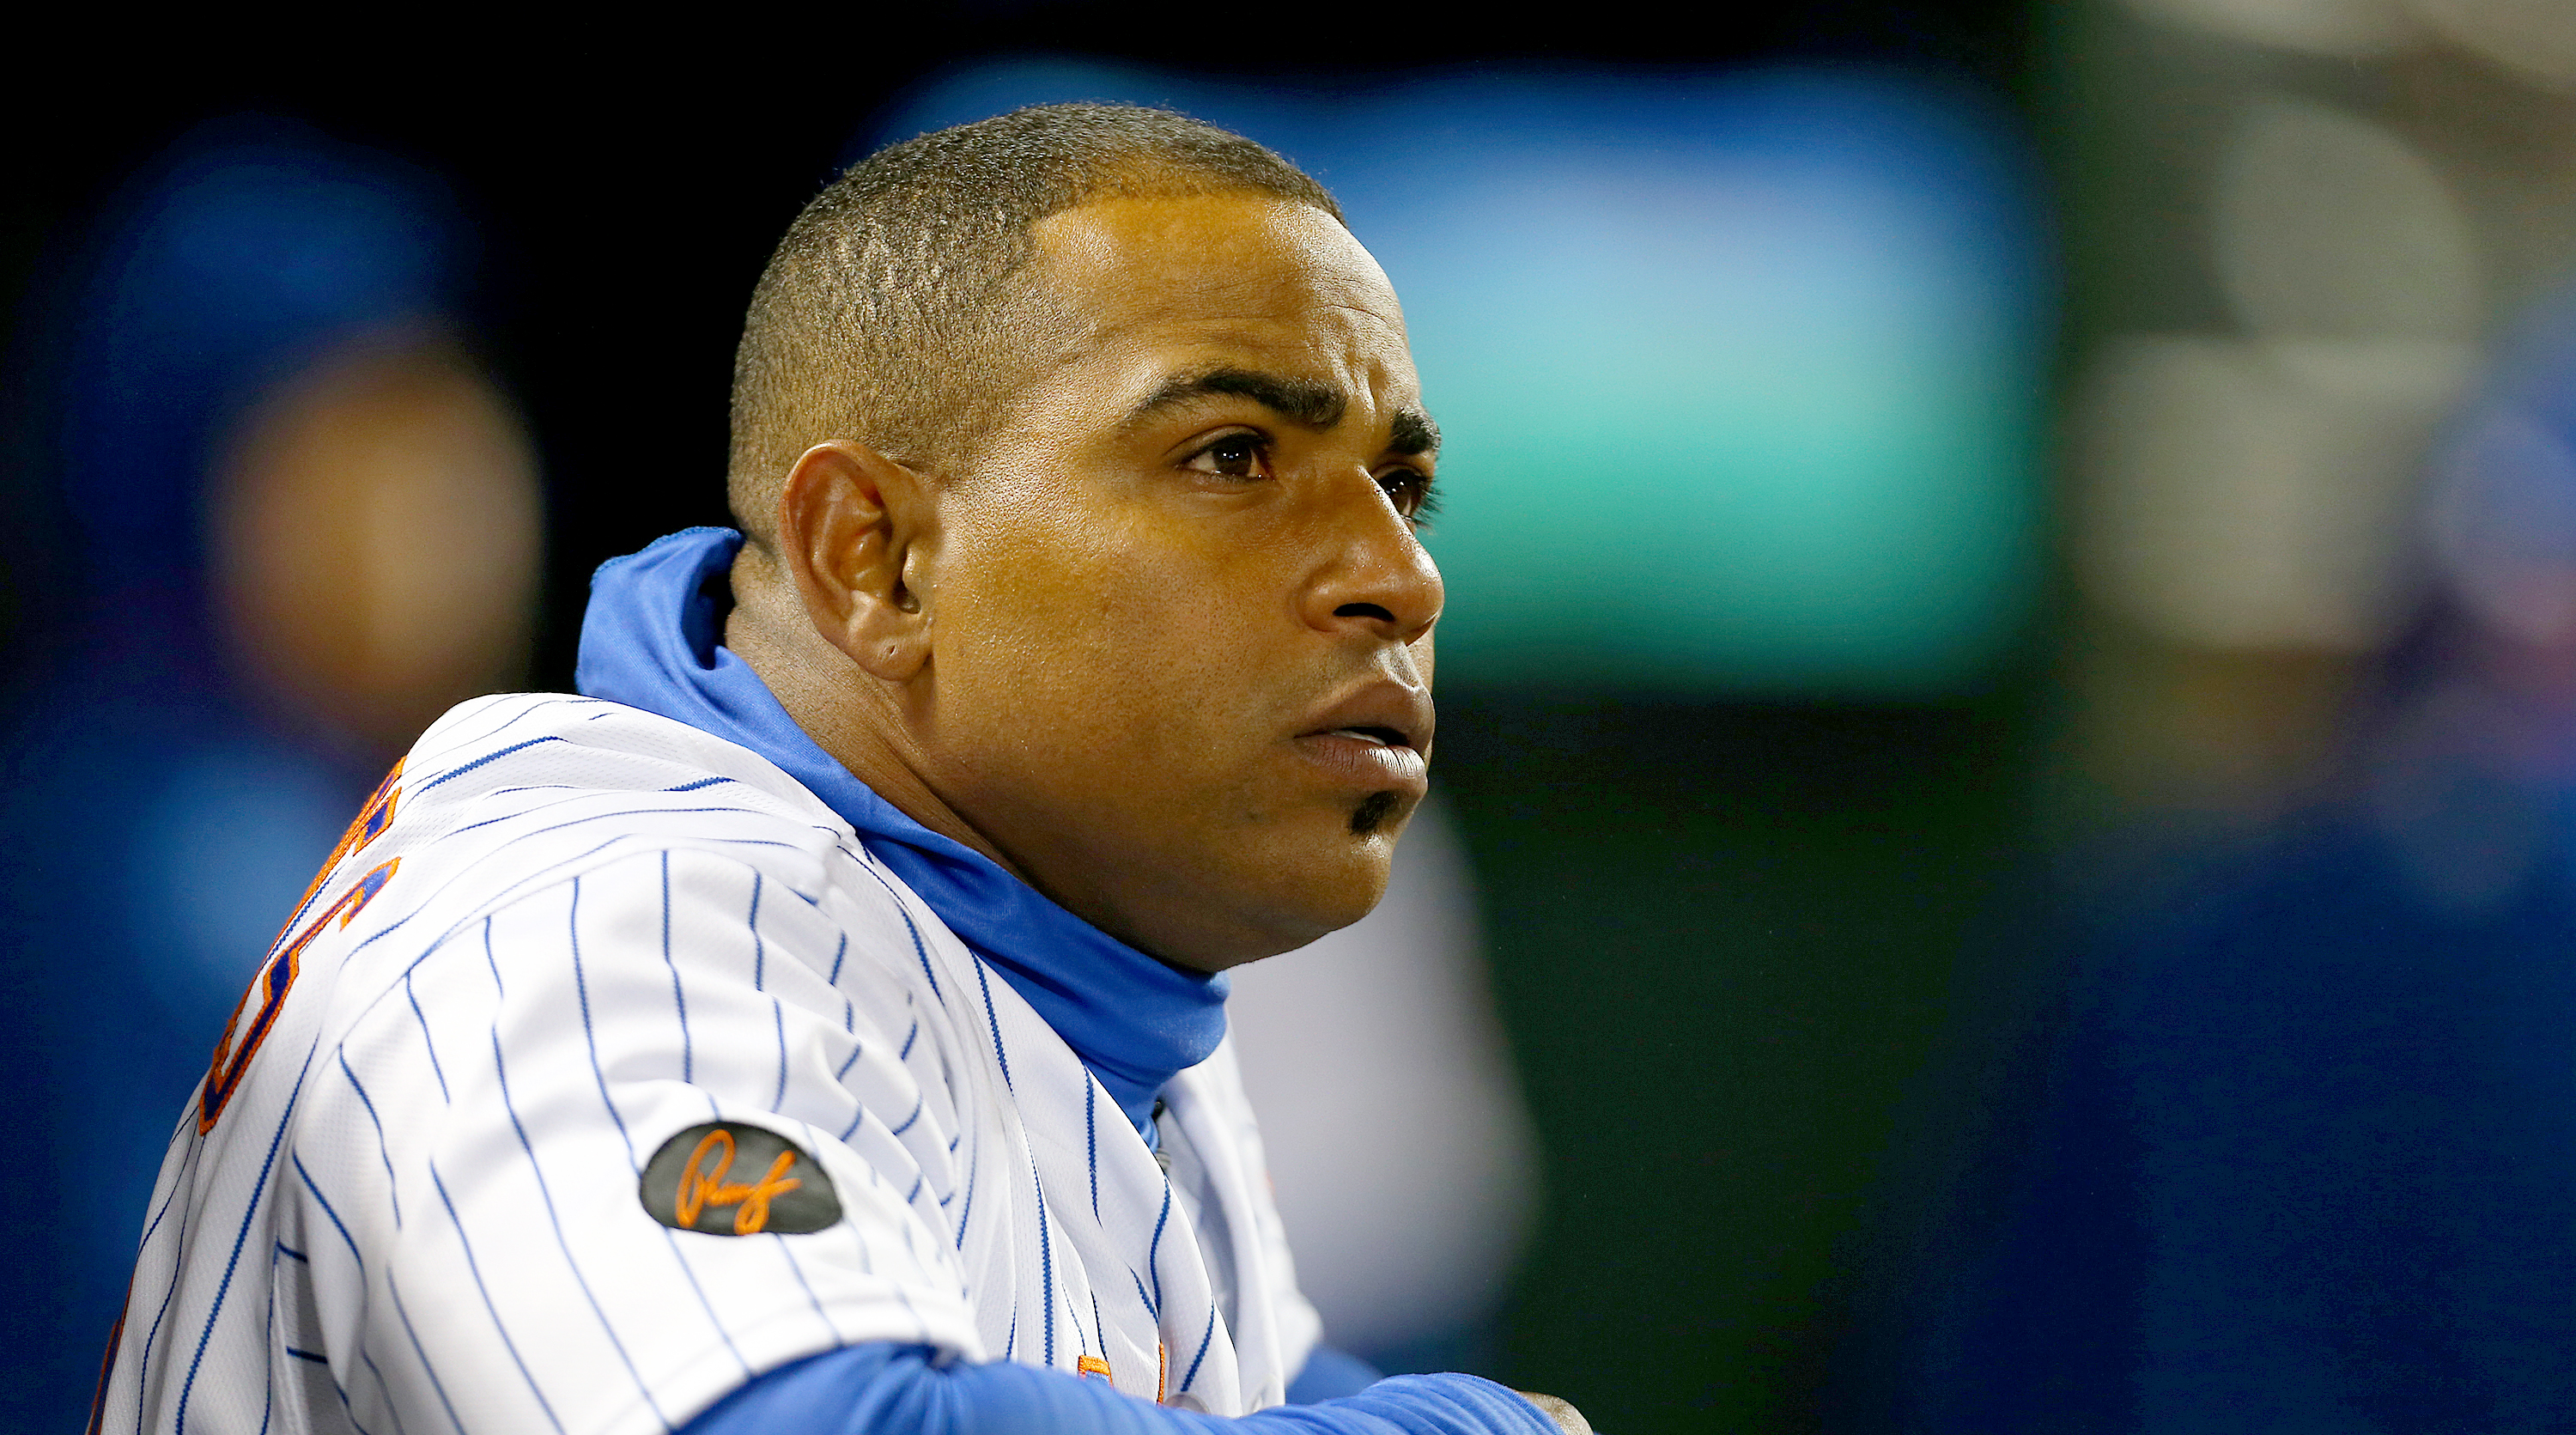 Cespedes signed a four-year deal with the Mets worth $110 million following the 2016 season.